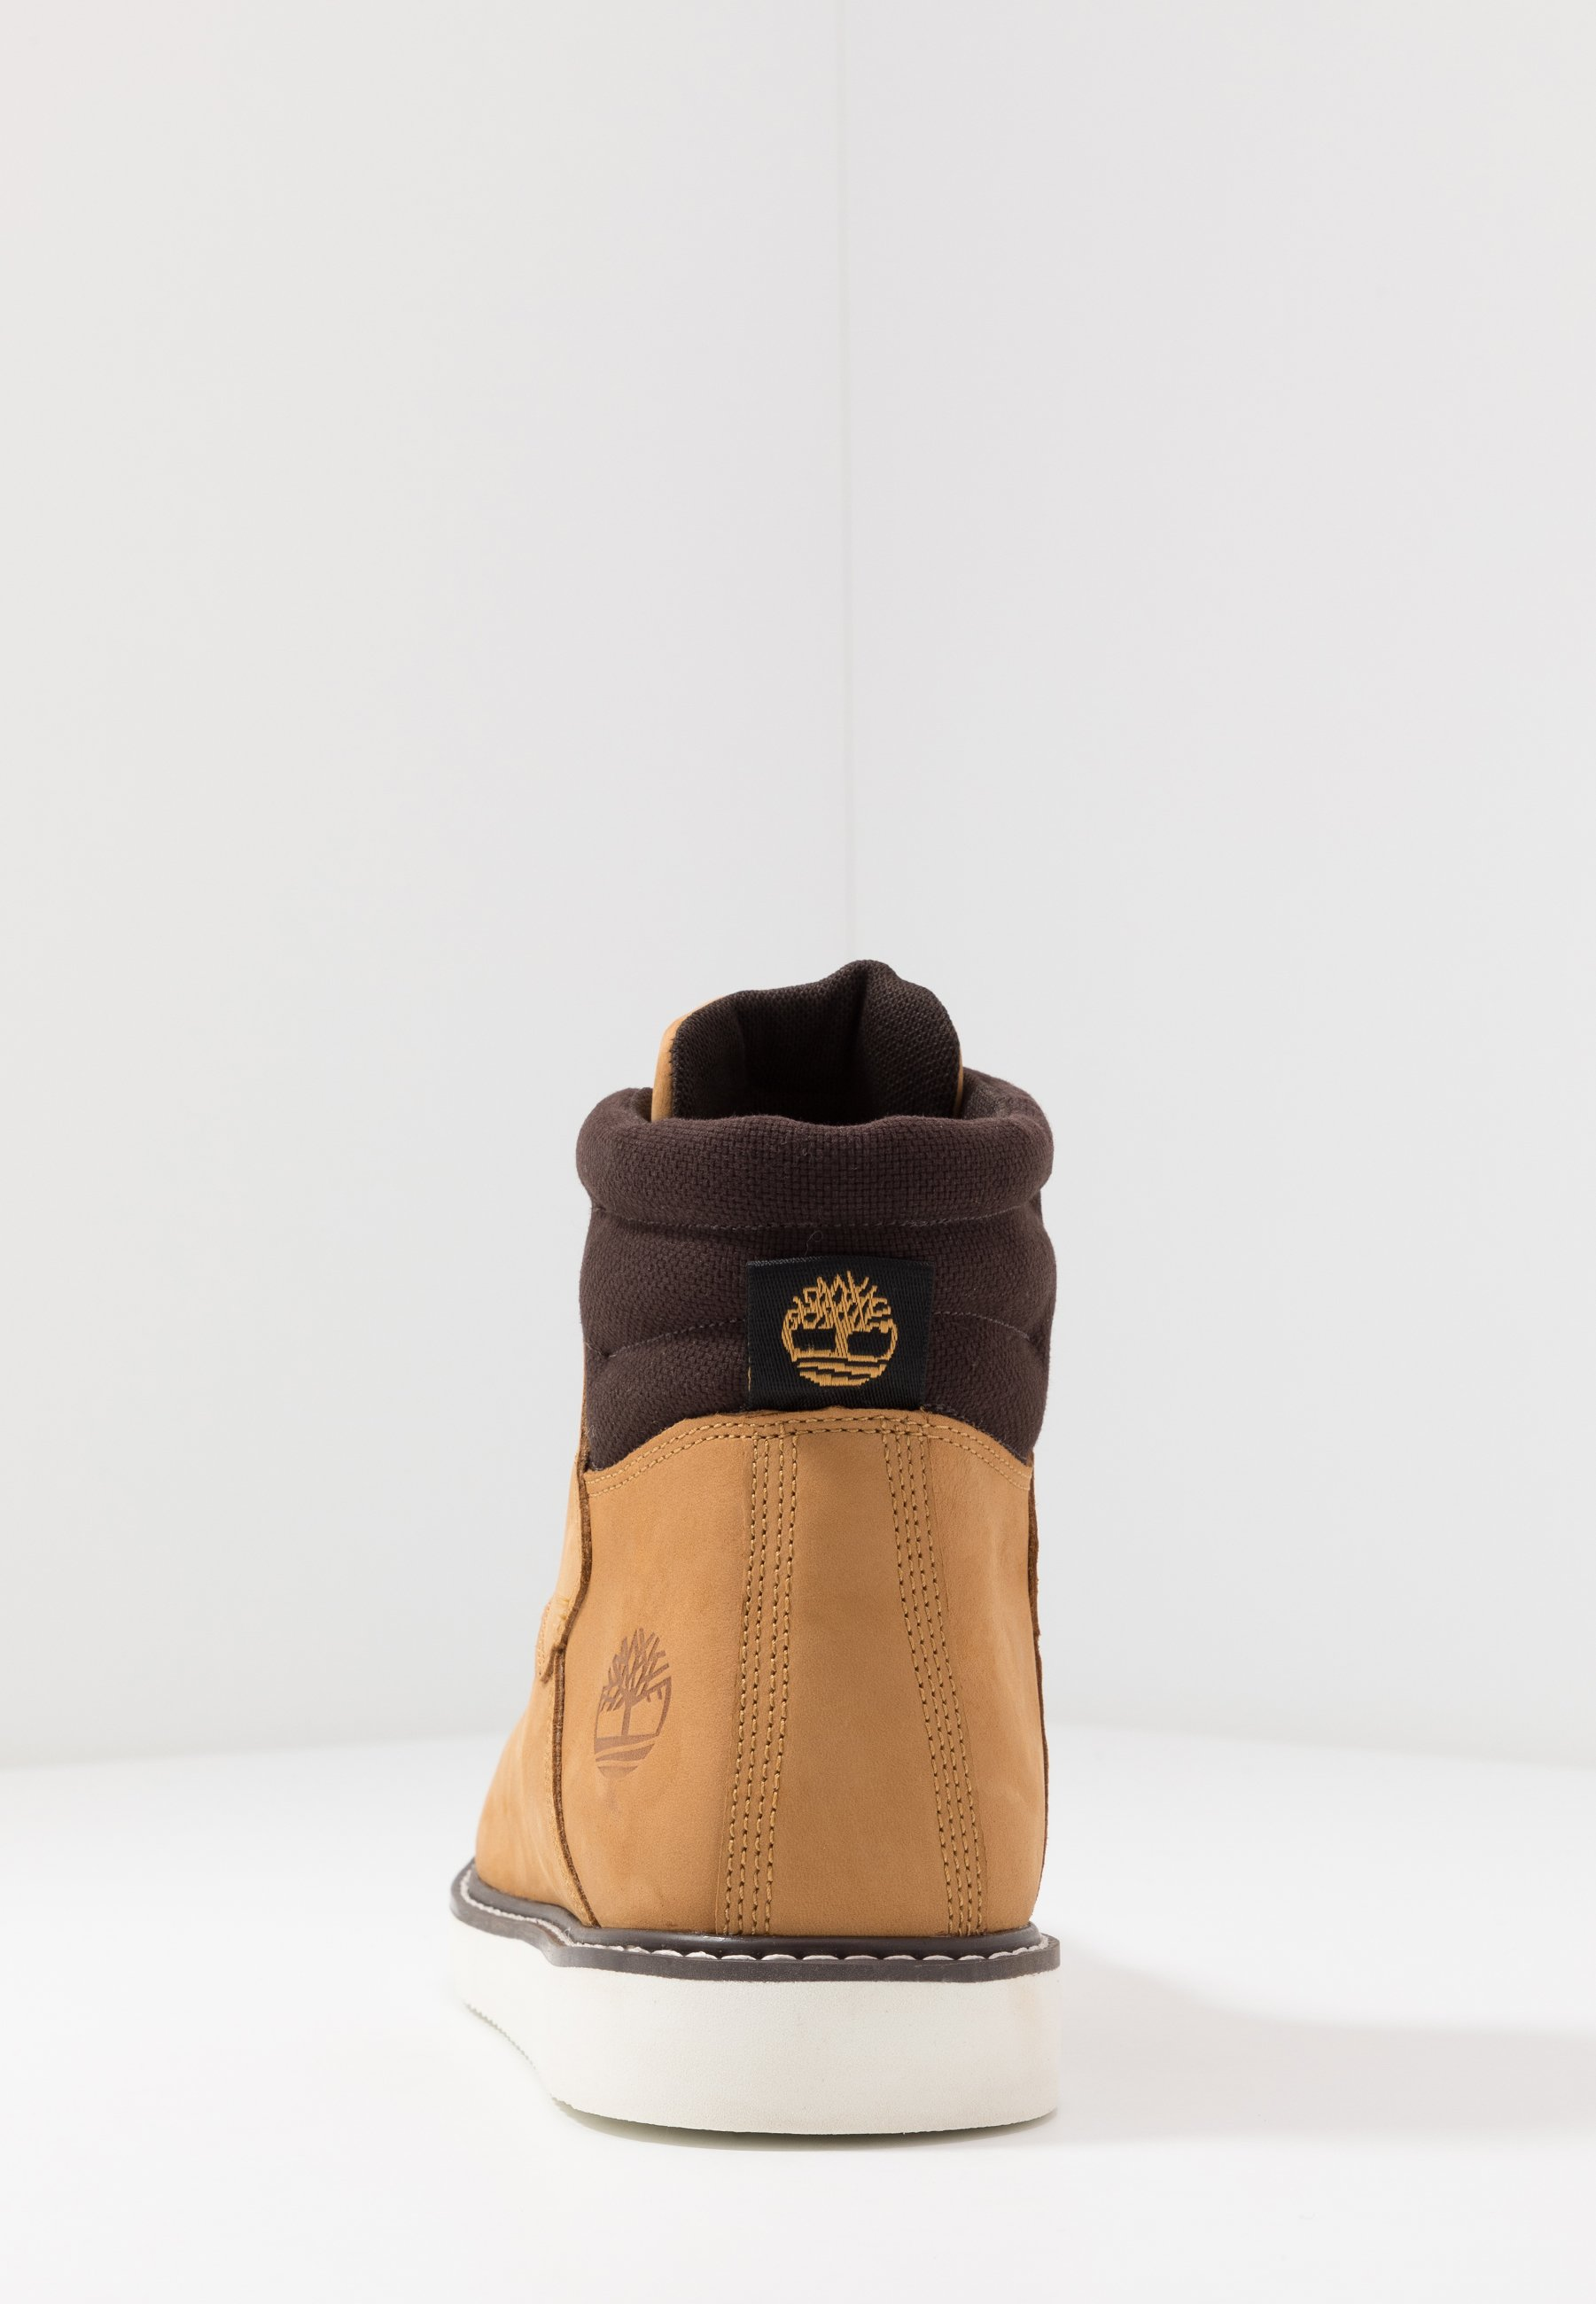 Timberland Newmarket Boot - Lace-up Ankle Boots Wheat